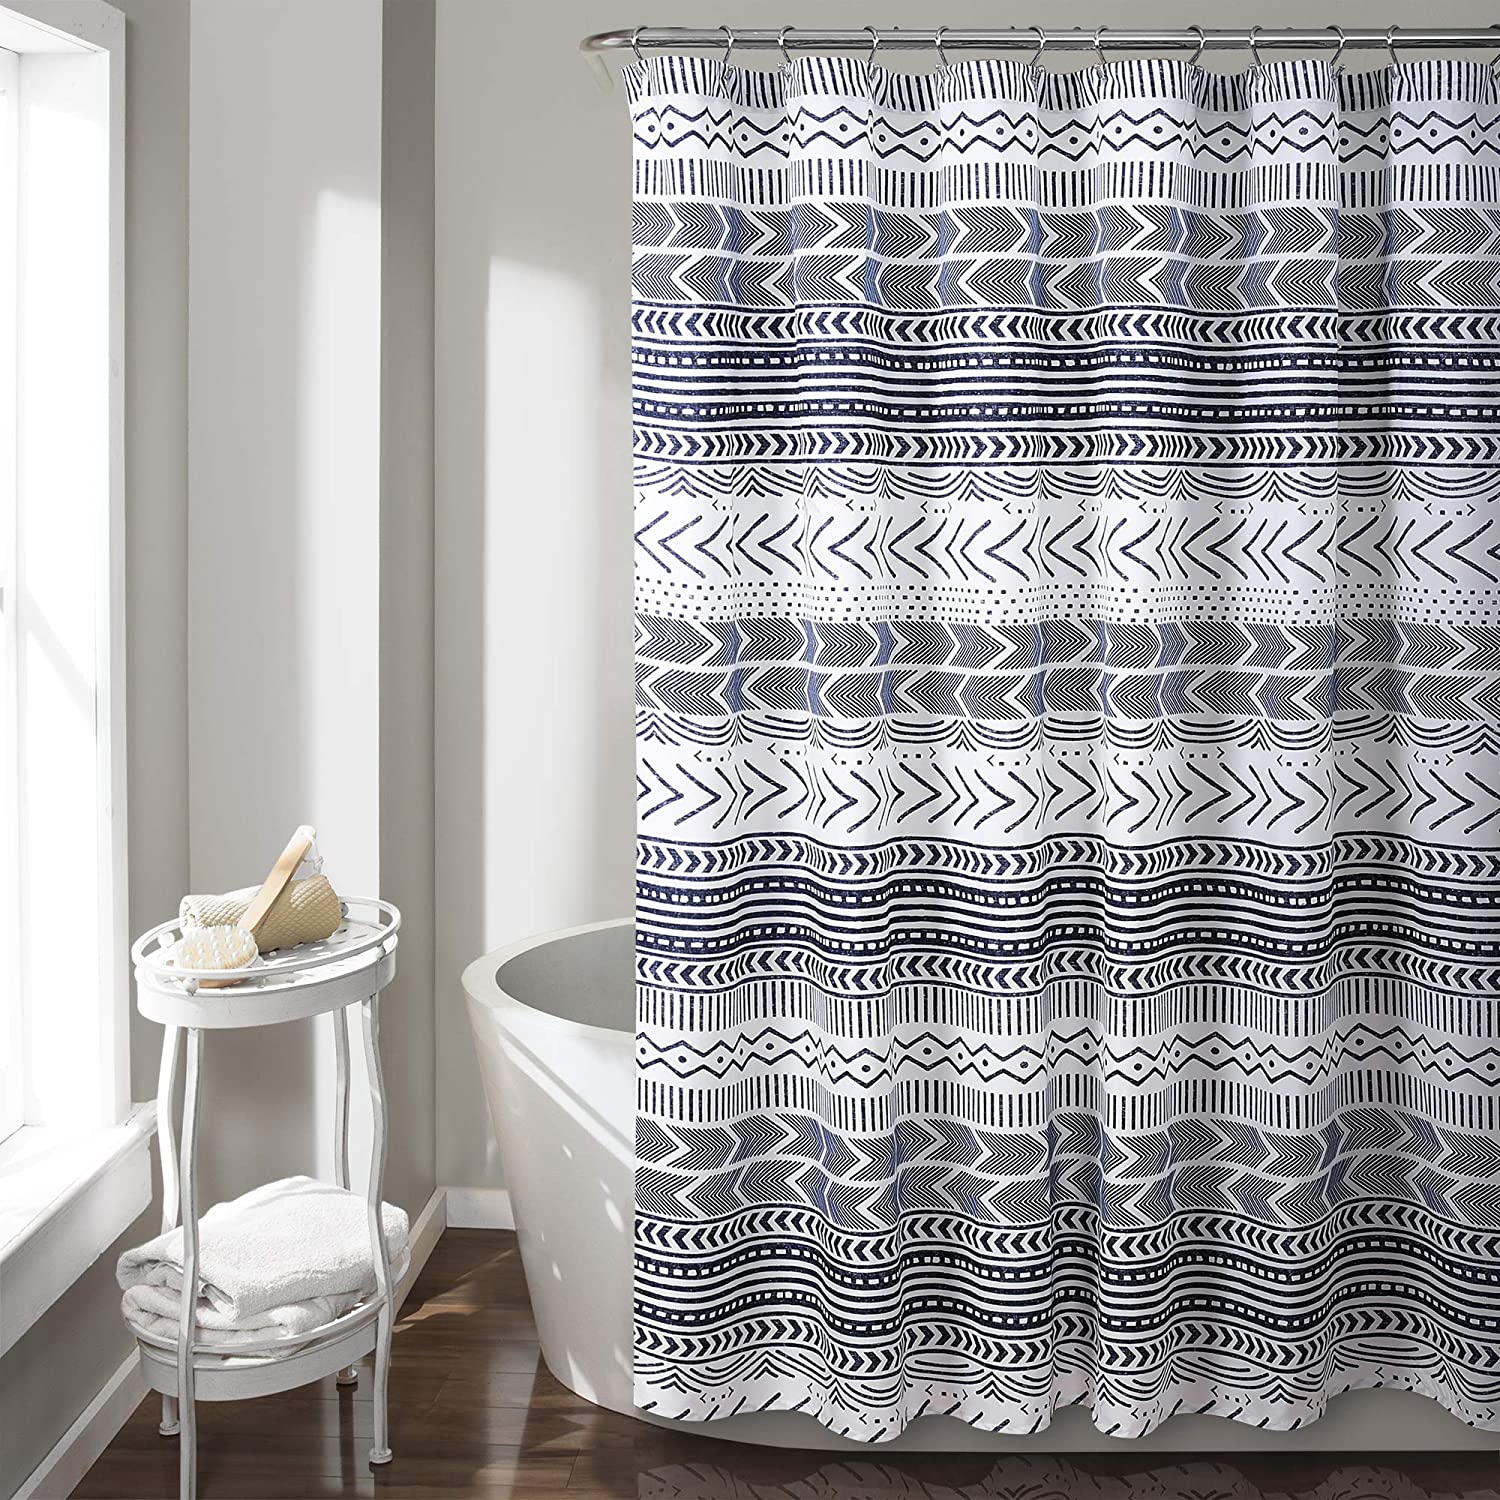 Lush Decor Hygge Geo Shower Curtain, 72